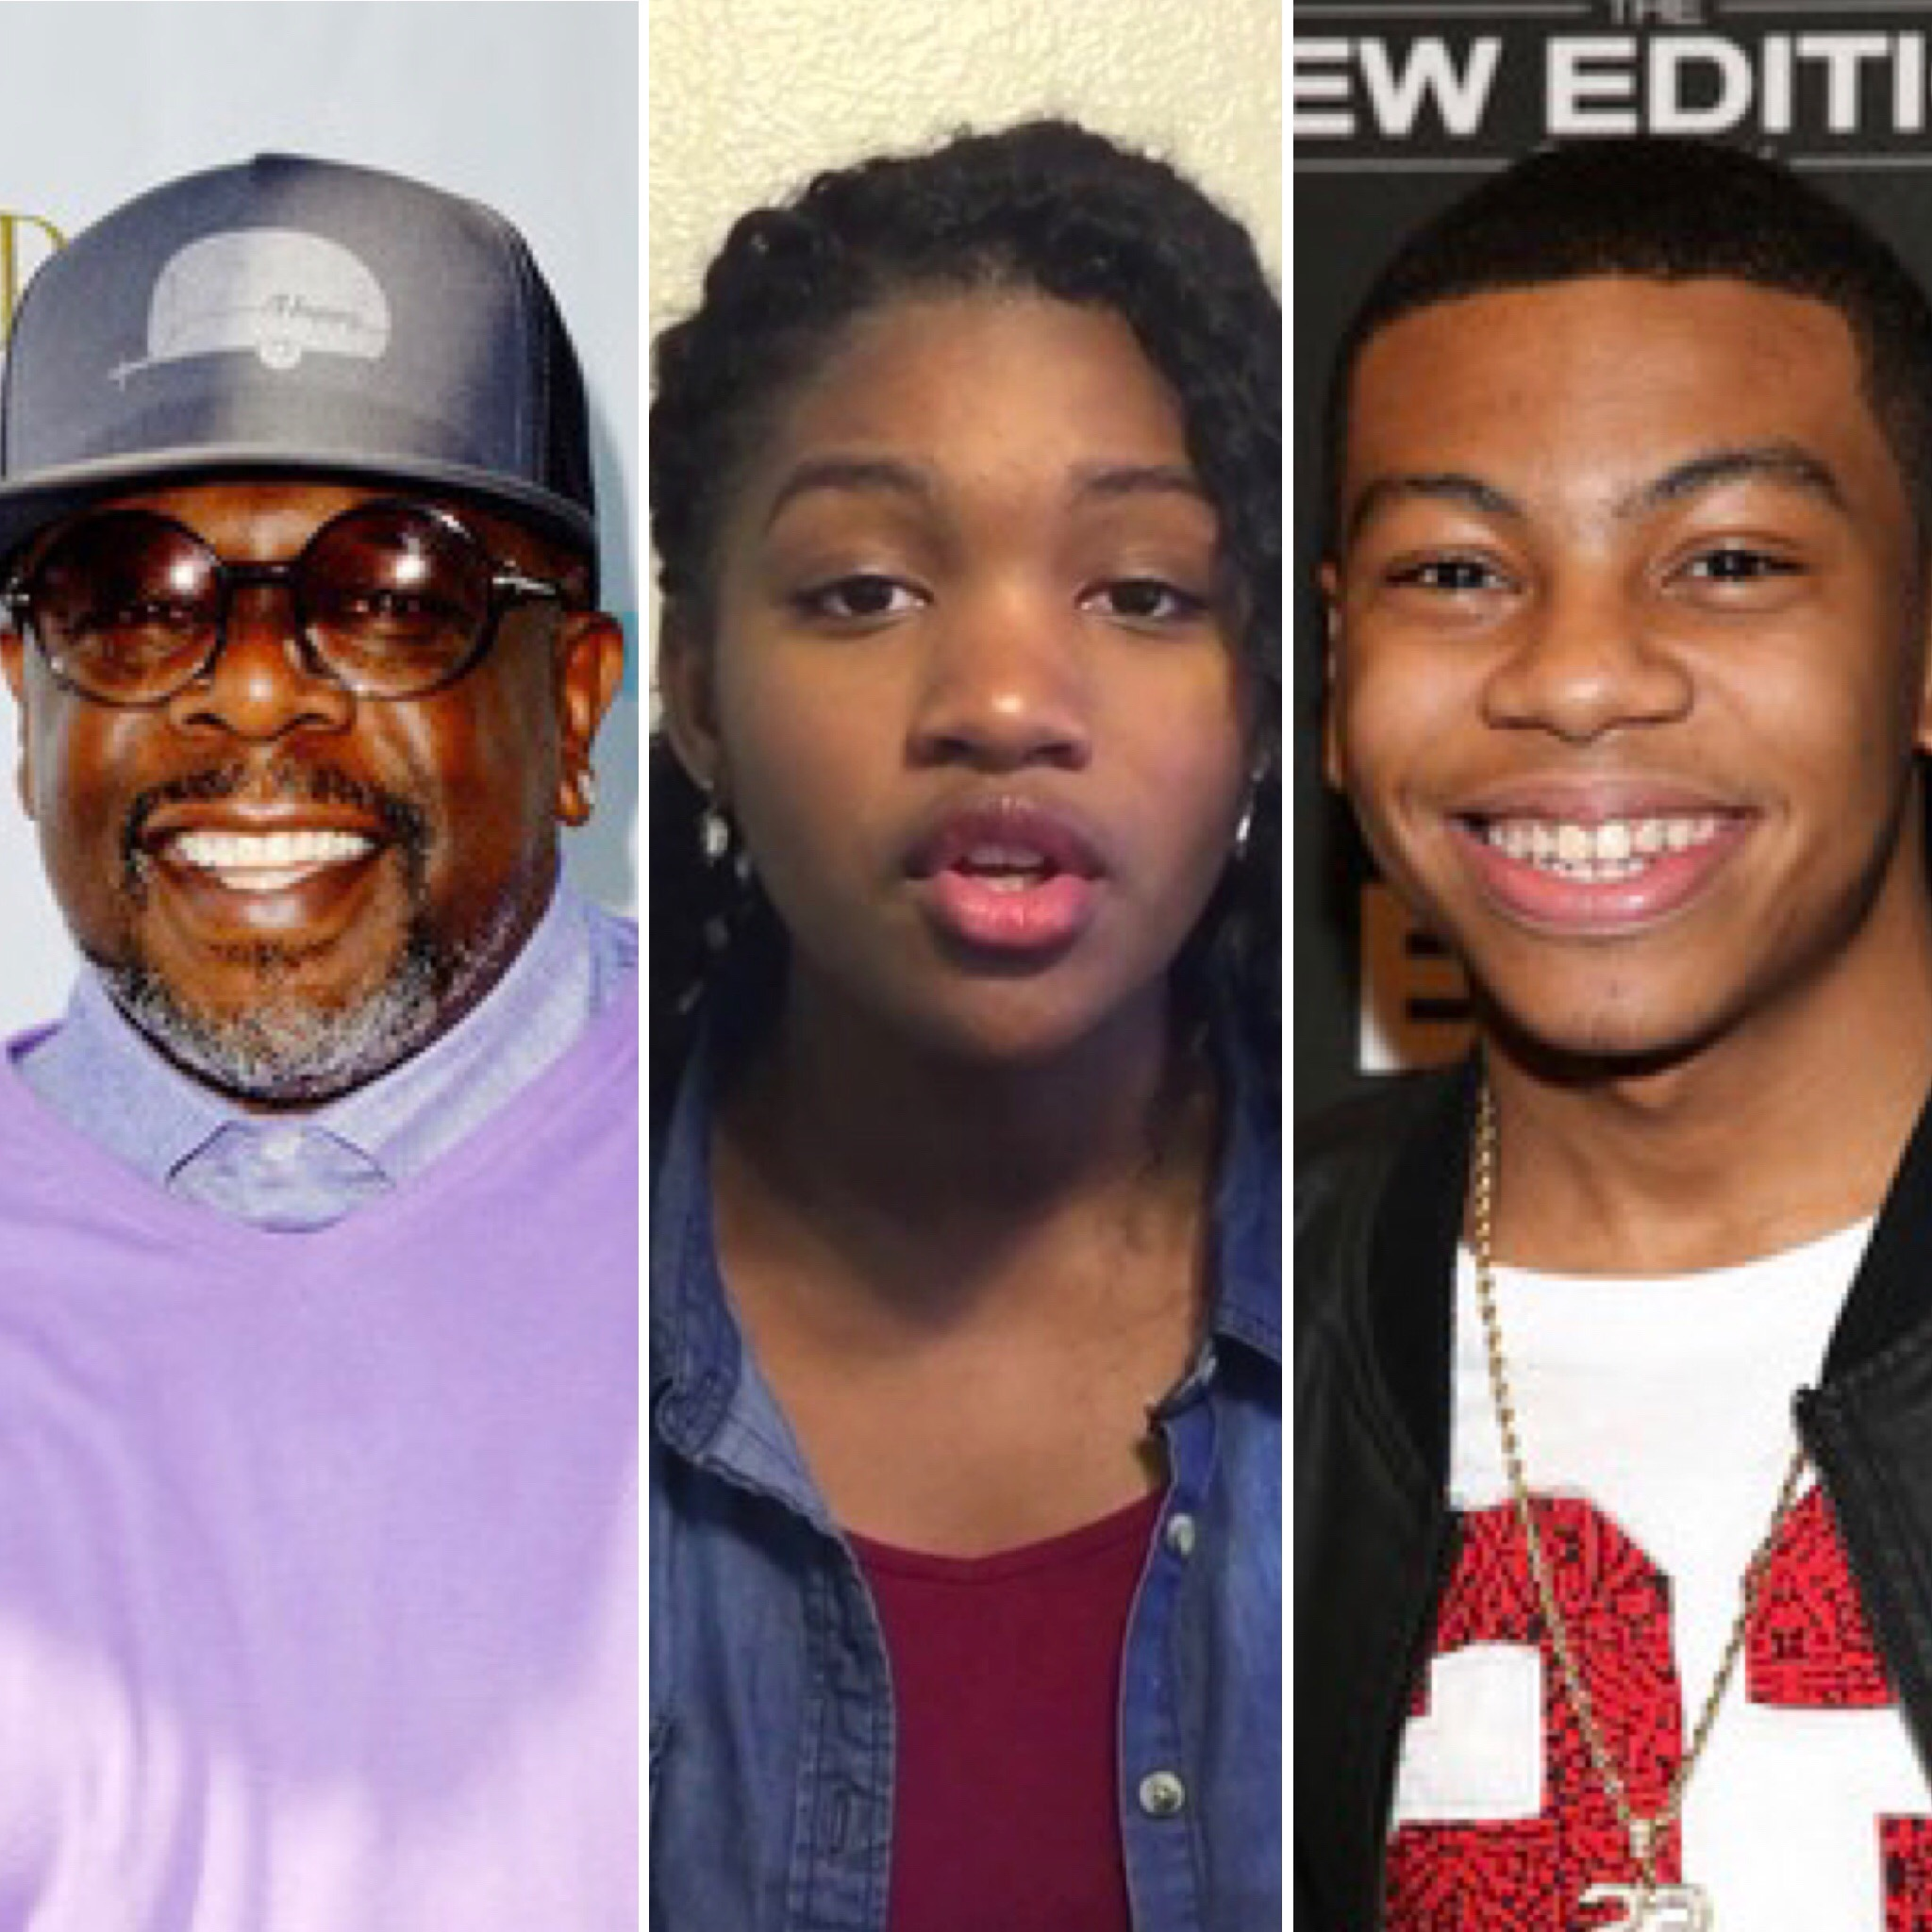 (L-R) Cedric the Entertainer, Taylor Mosby and Dante Hoagland